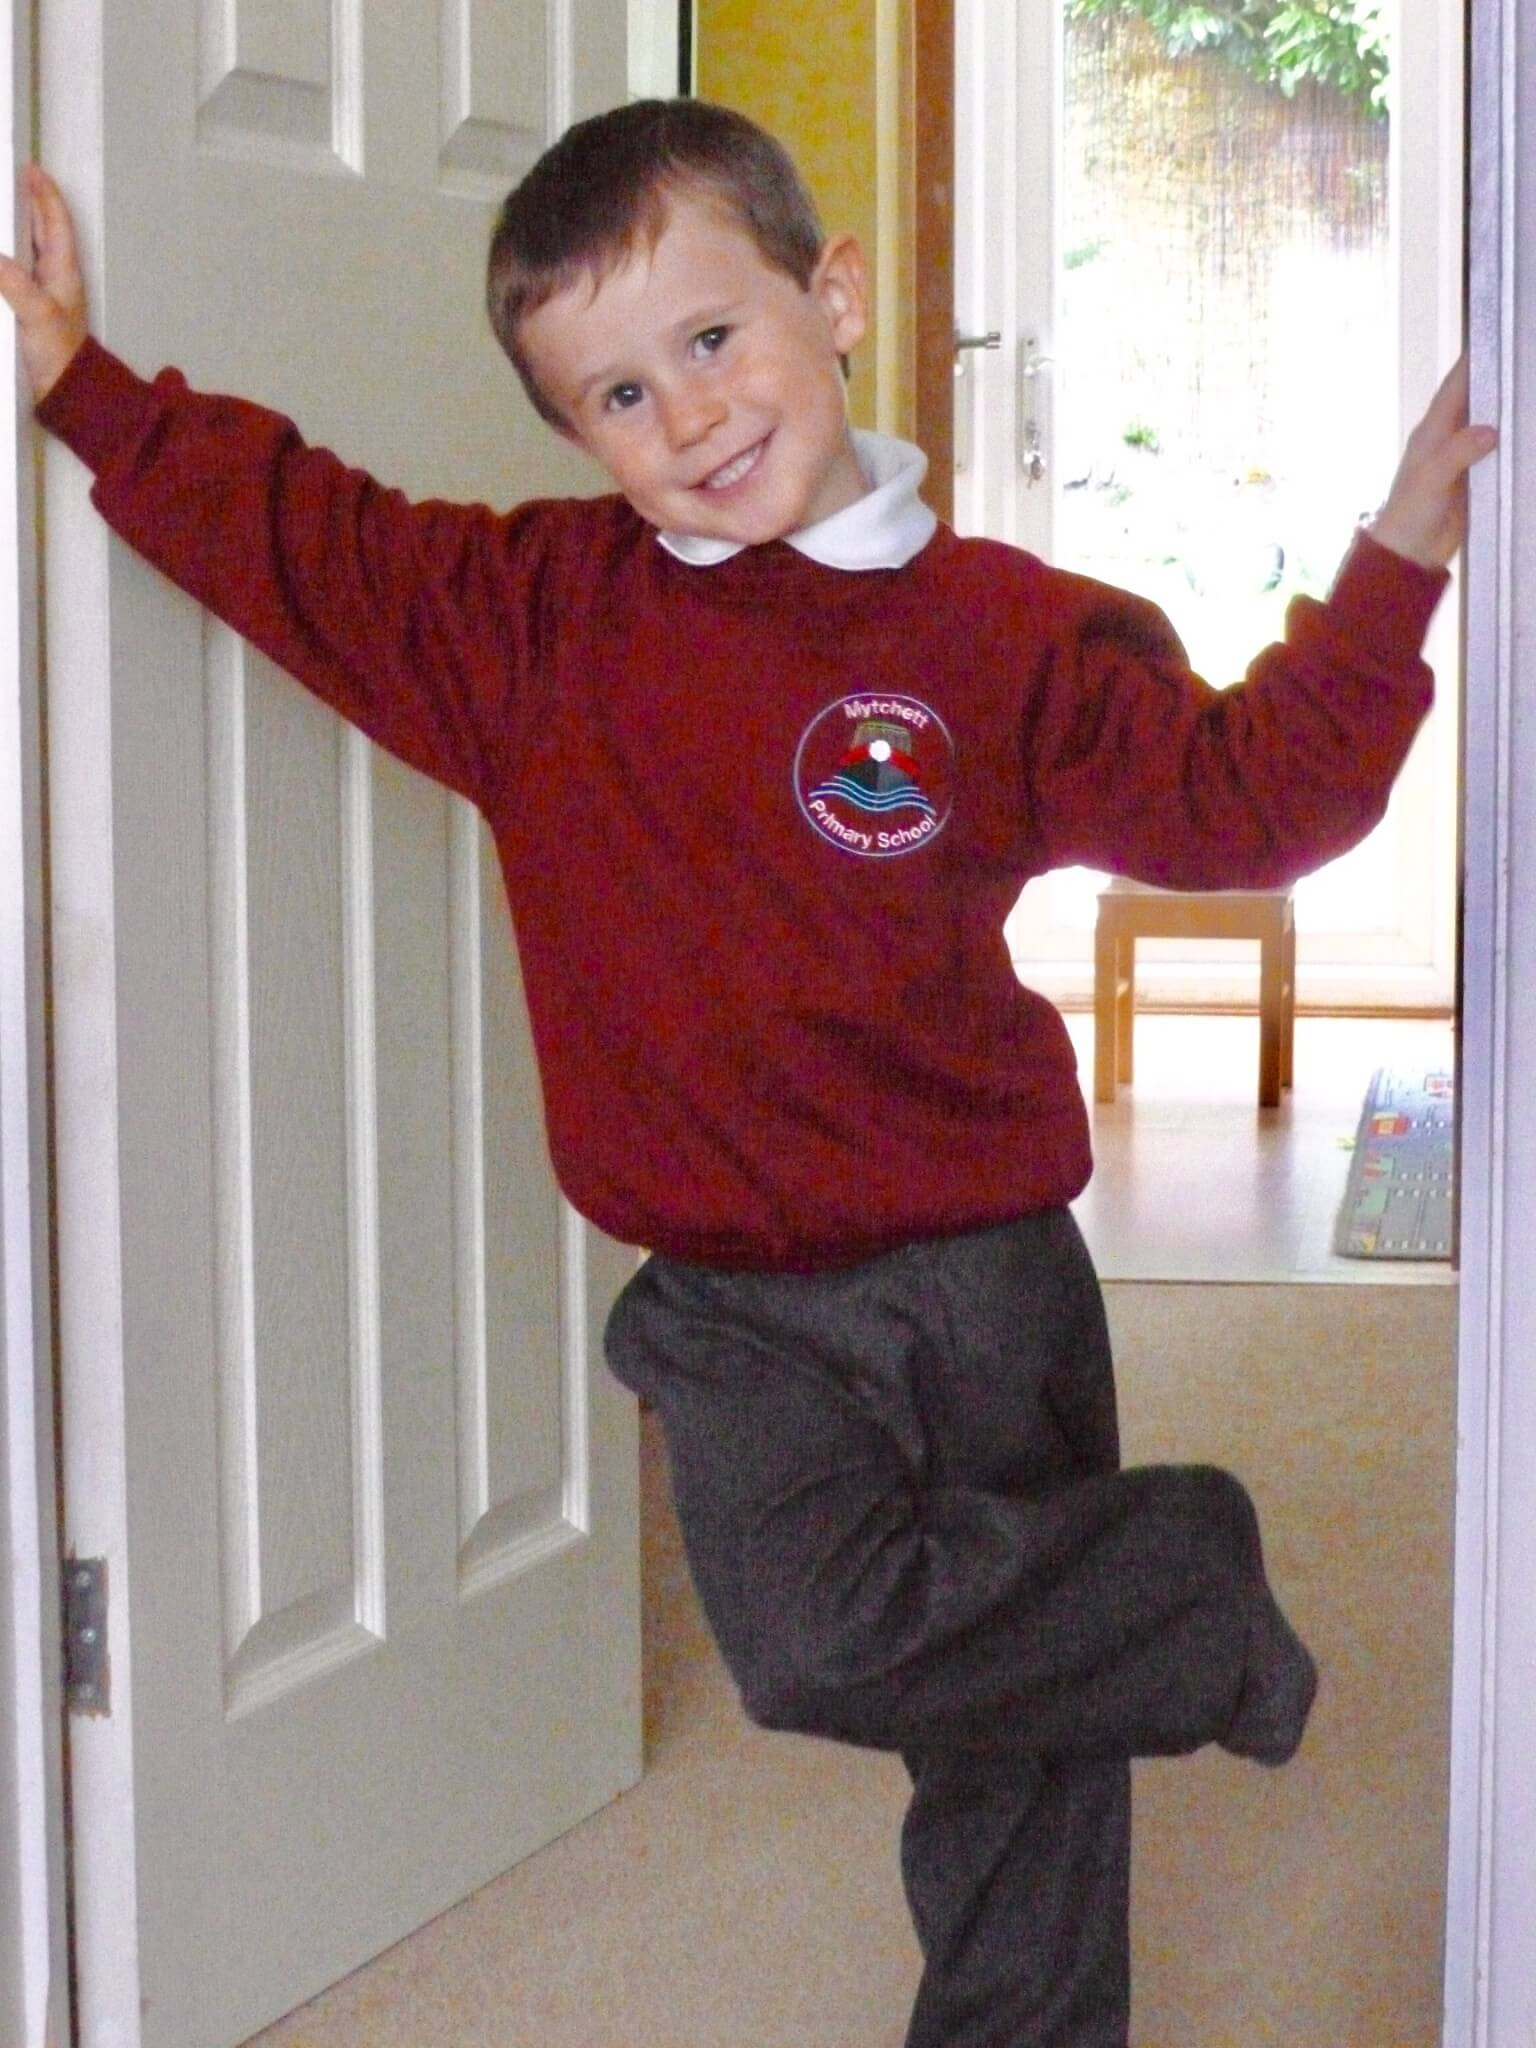 Luke's first day at school